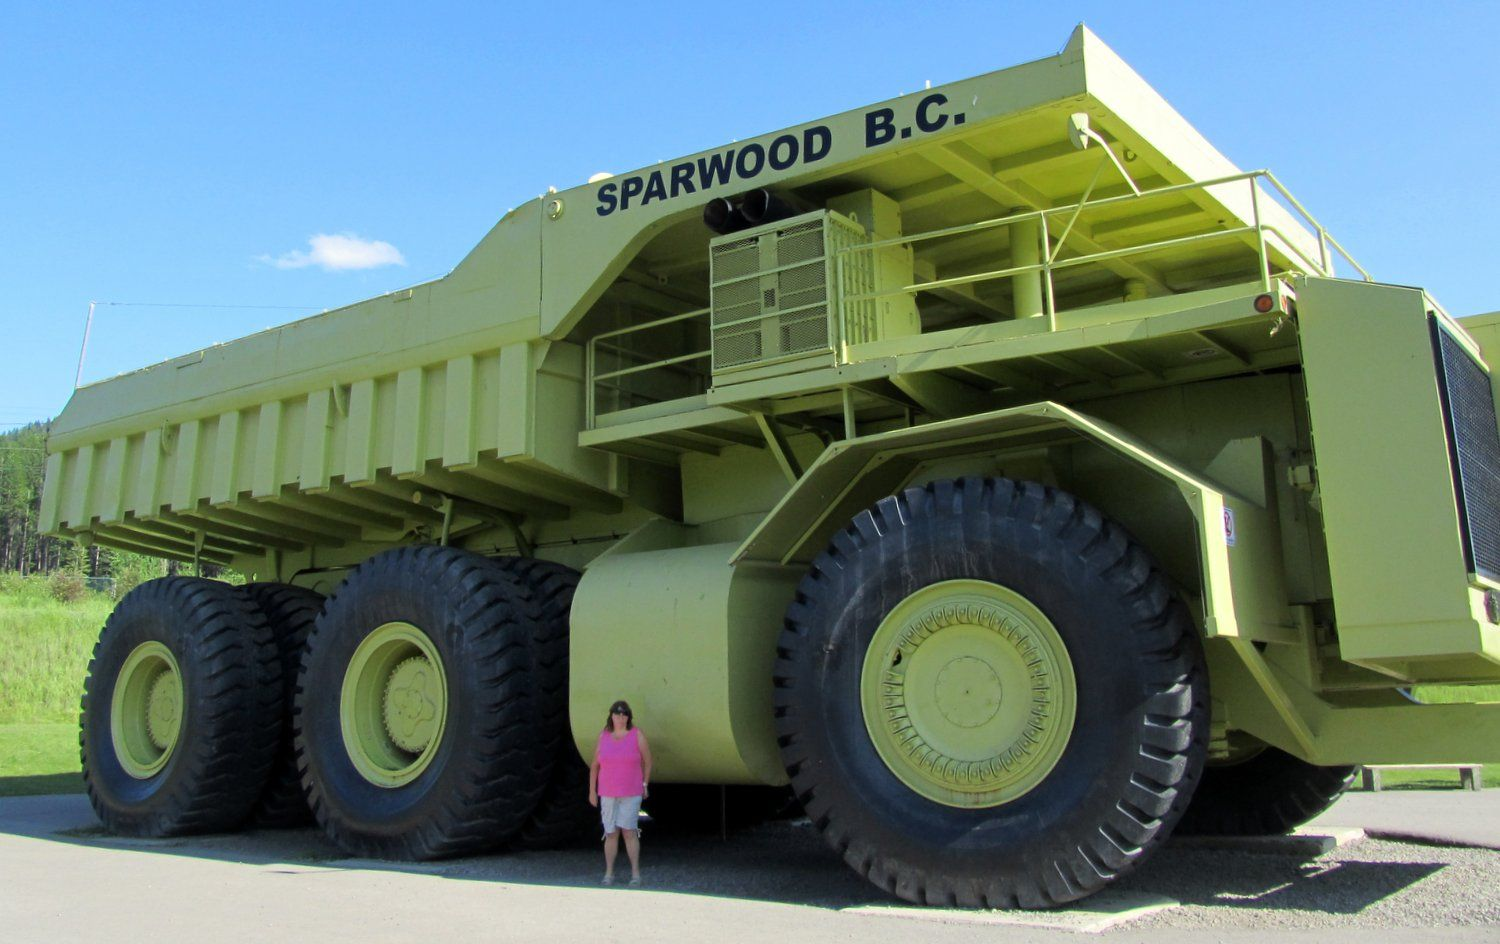 Biggest Dump Truck | Biggest dump truck in the world ...